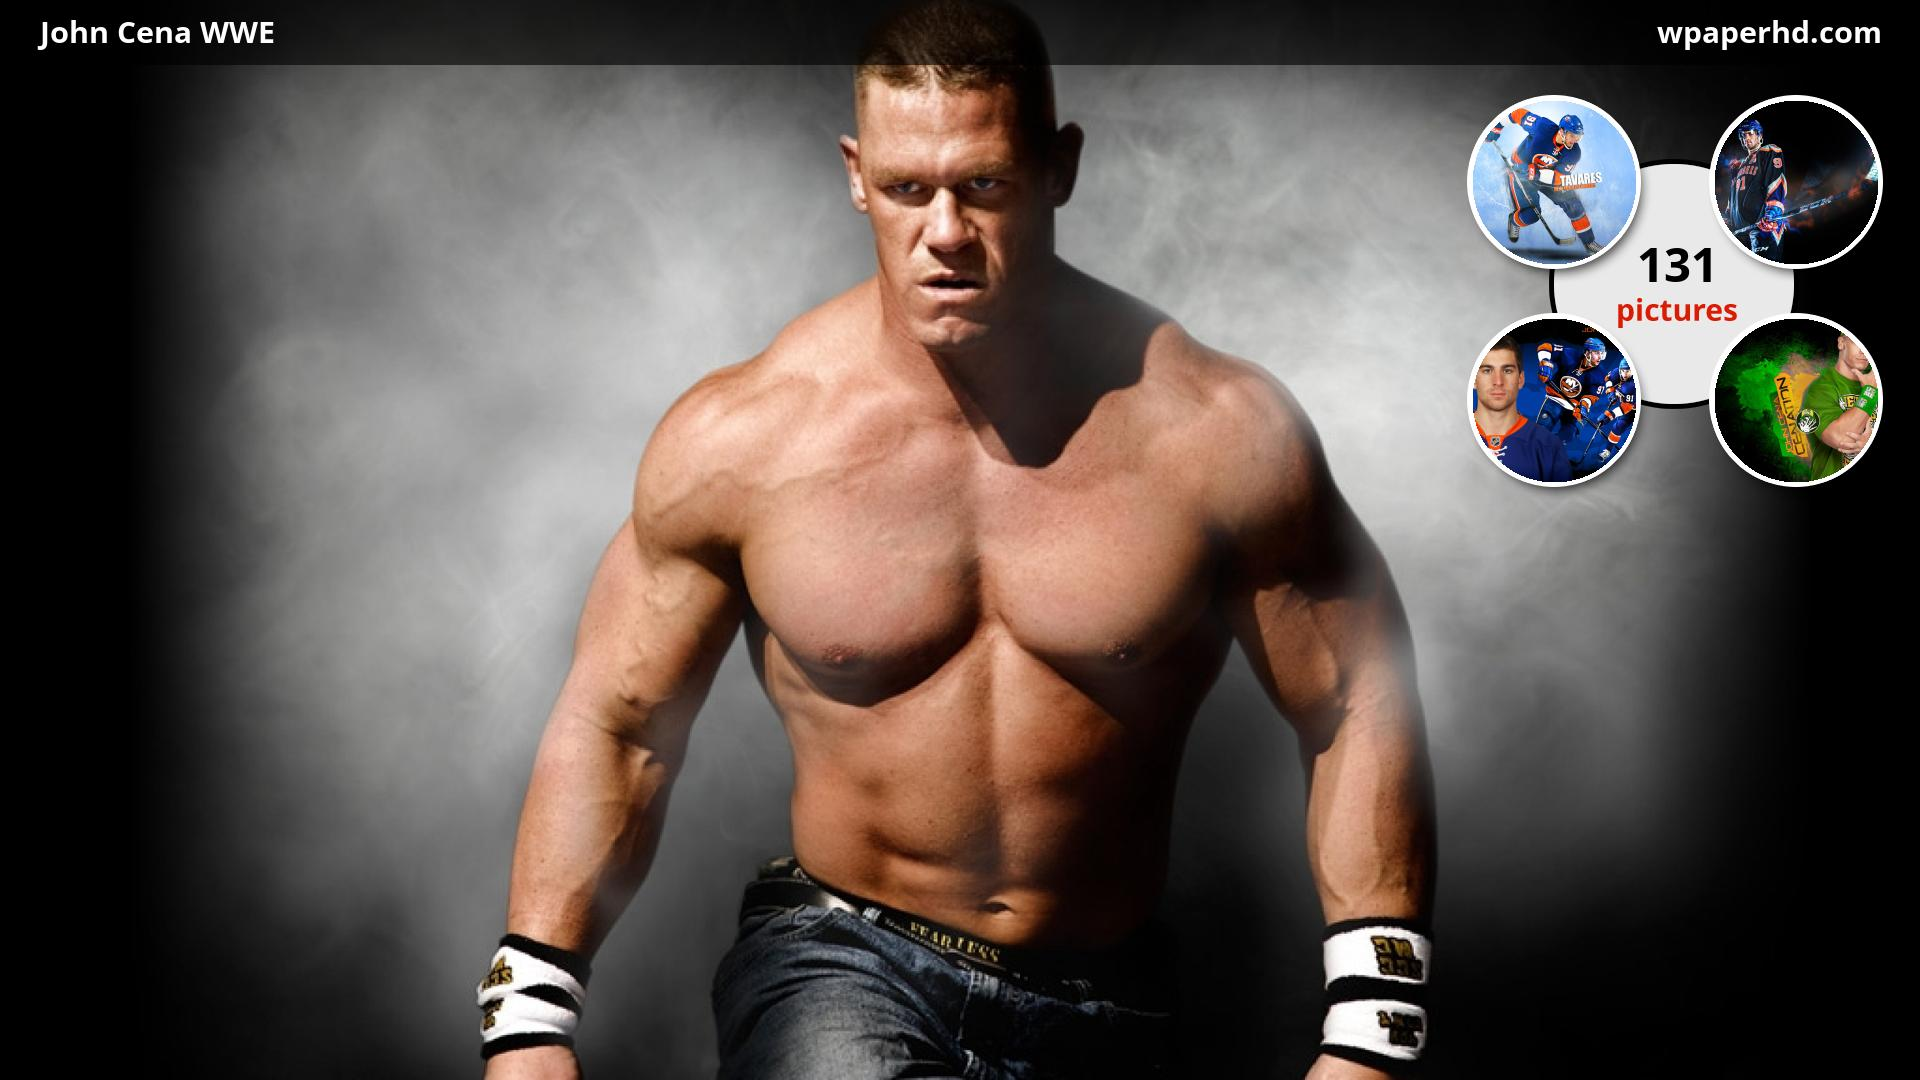 Wwe John Cena Wallpaper Posted By Christopher Anderson